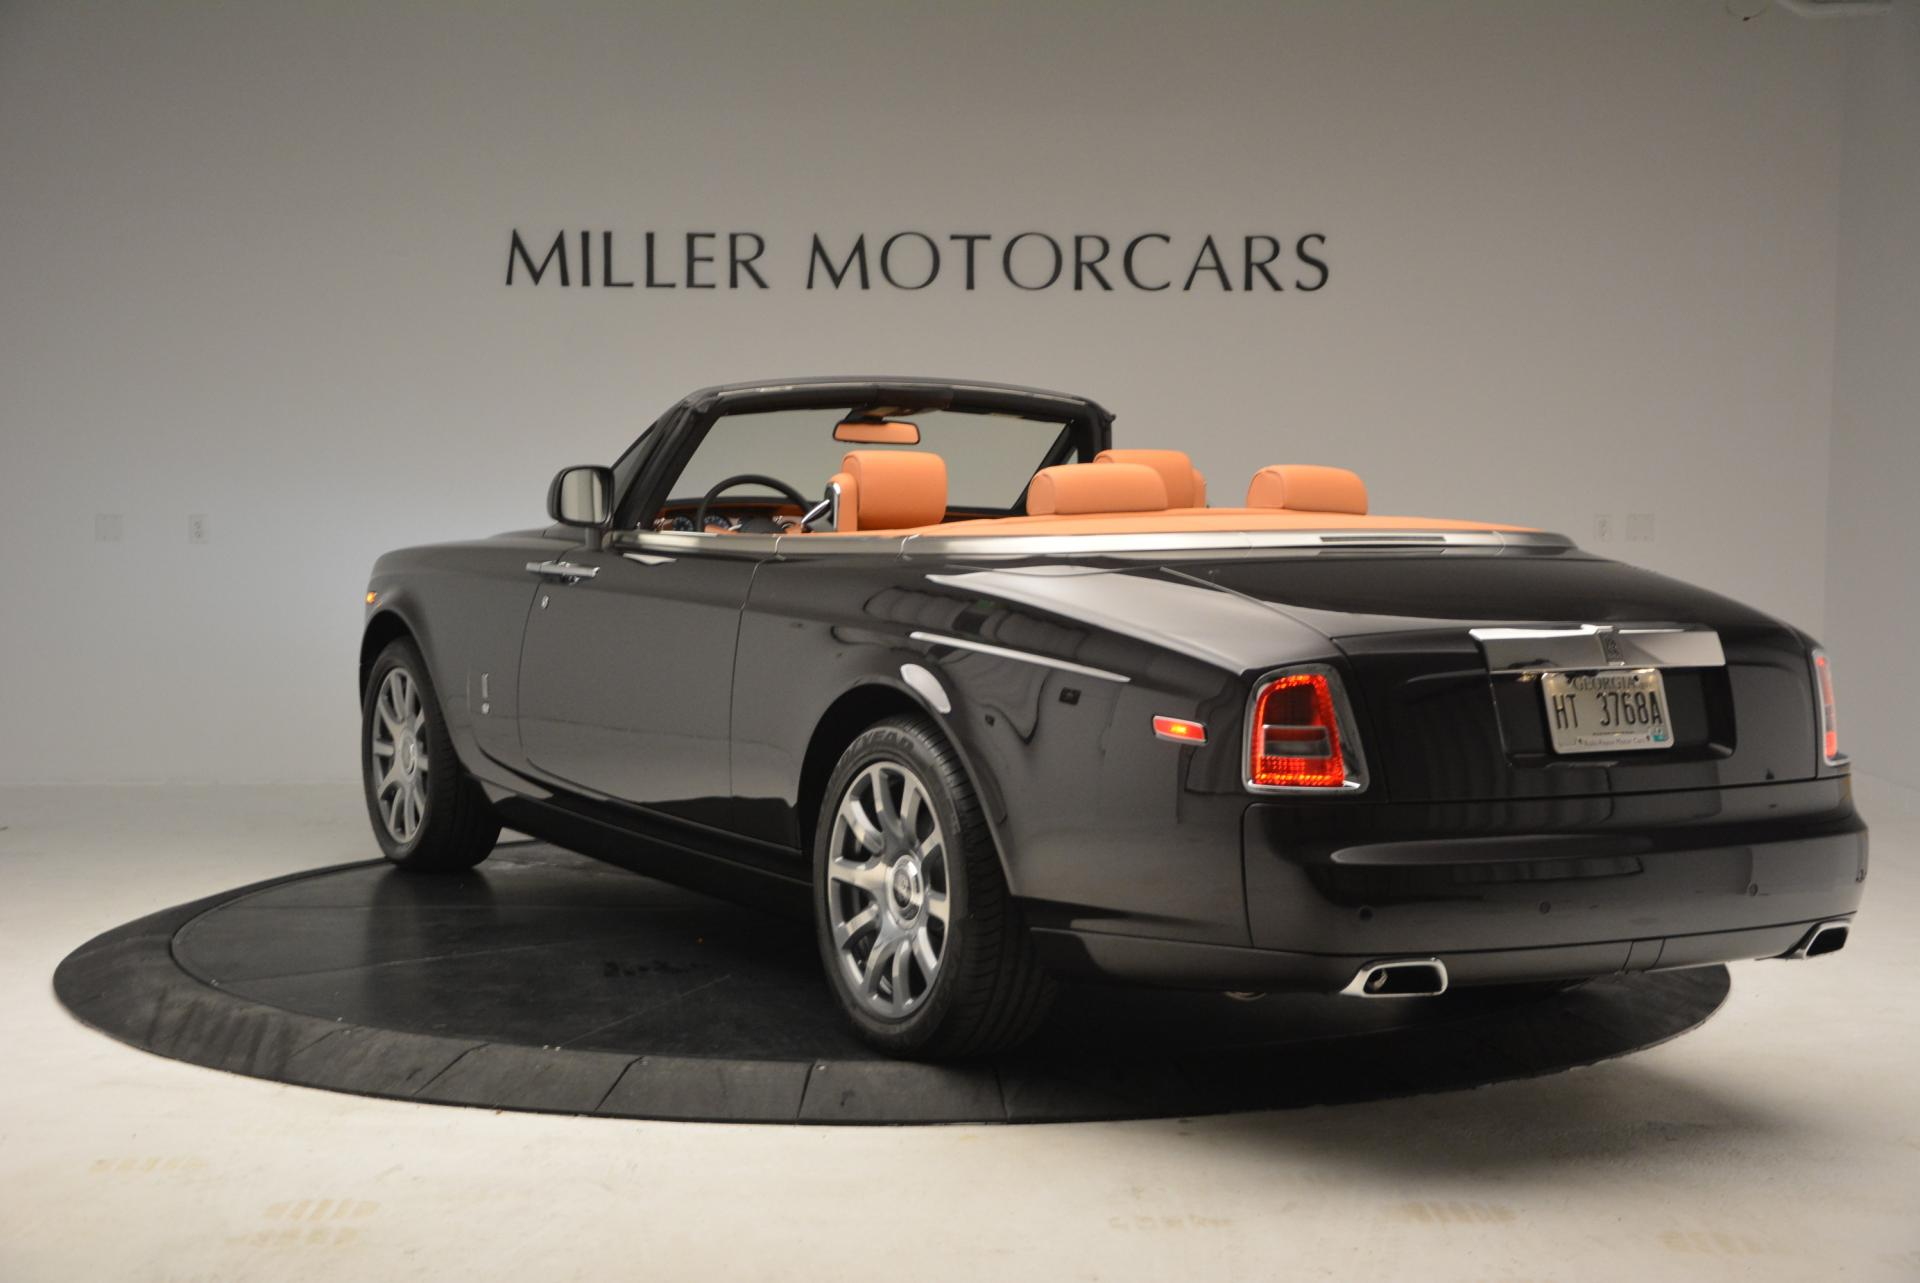 New 2016 Rolls-Royce Phantom Drophead Coupe Bespoke For Sale 0 In Greenwich, CT